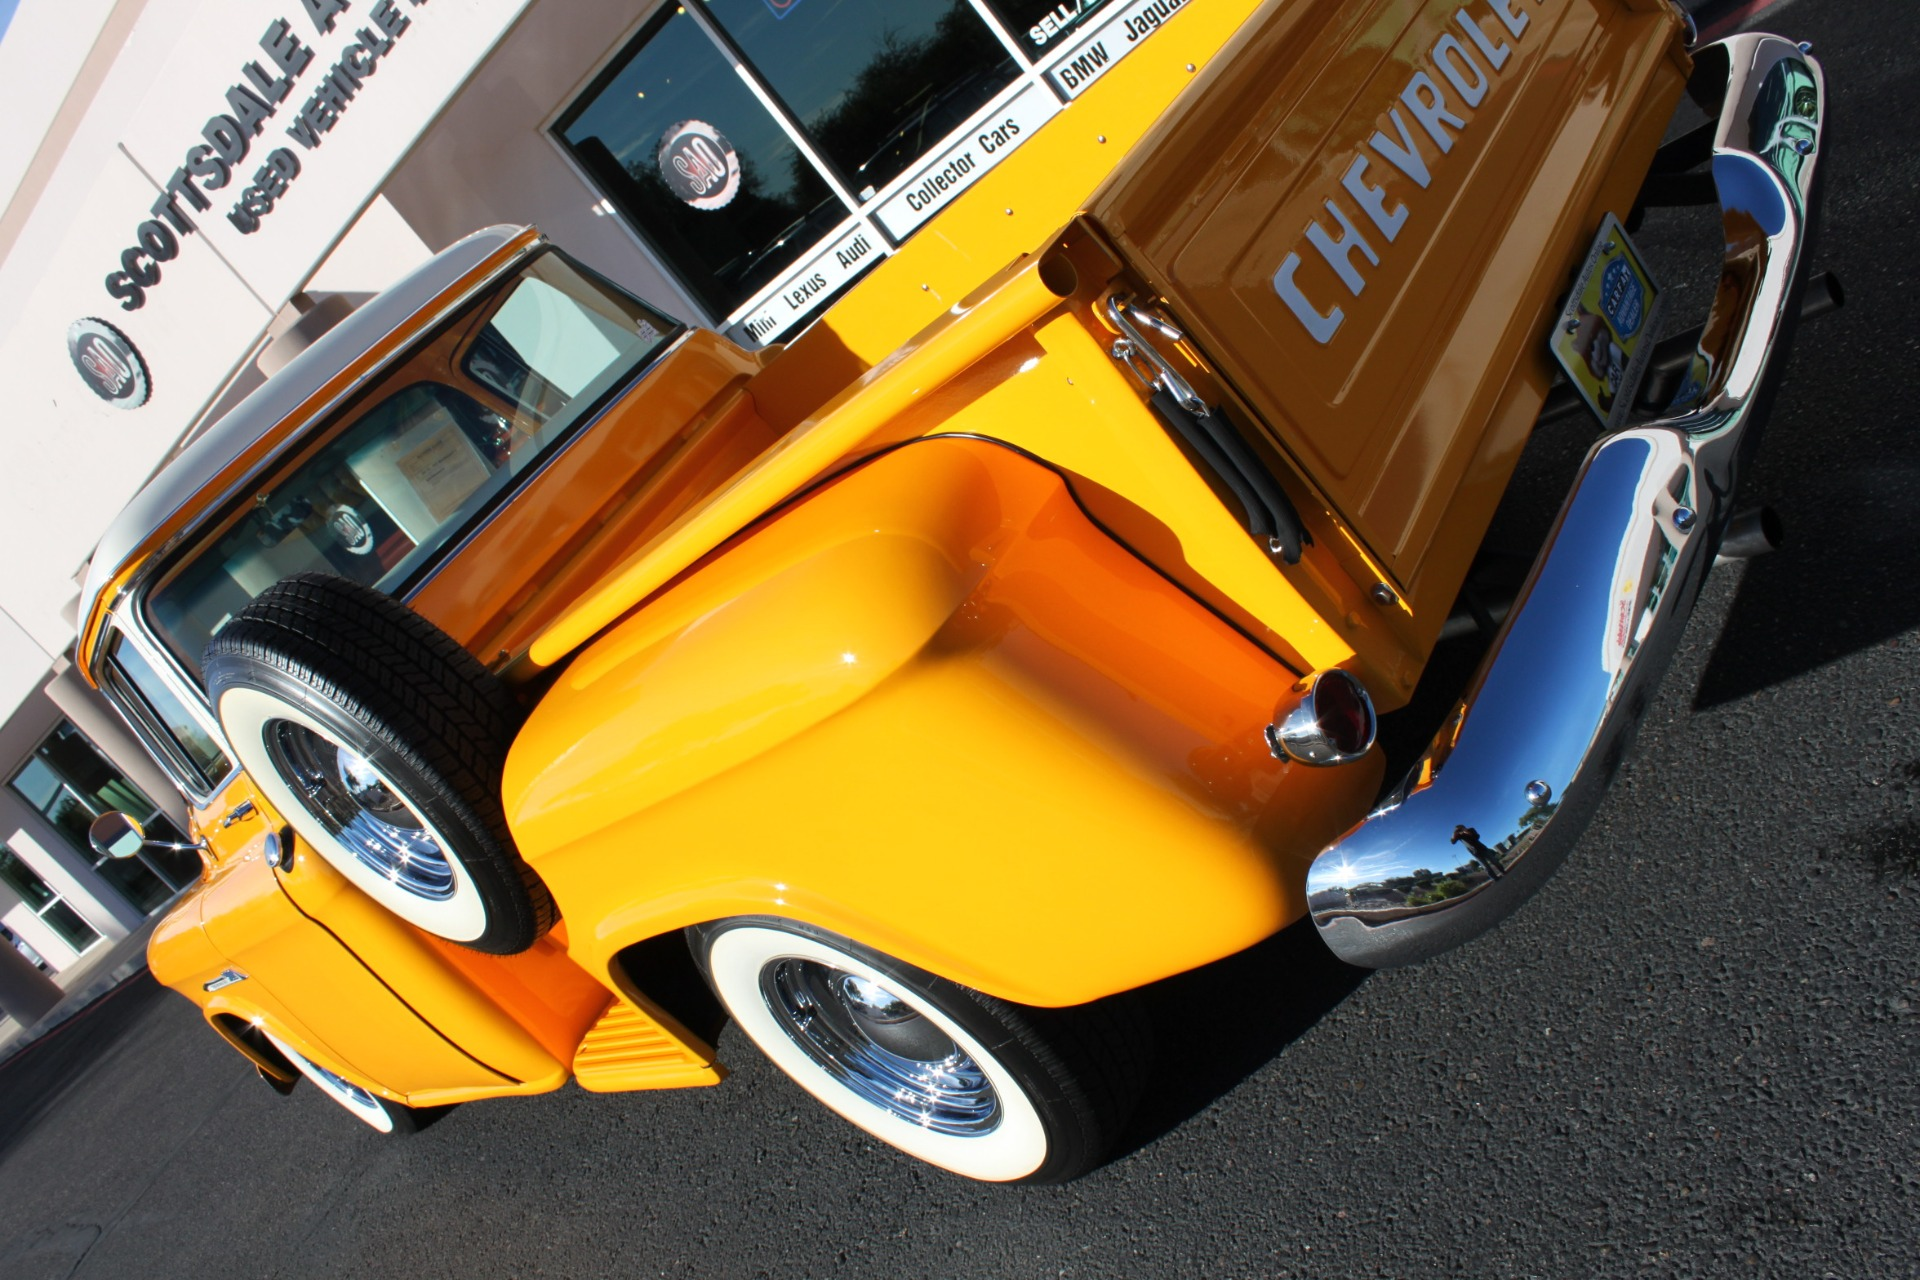 Used-1955-Chevrolet-3100-Pickup-Truck-Audi